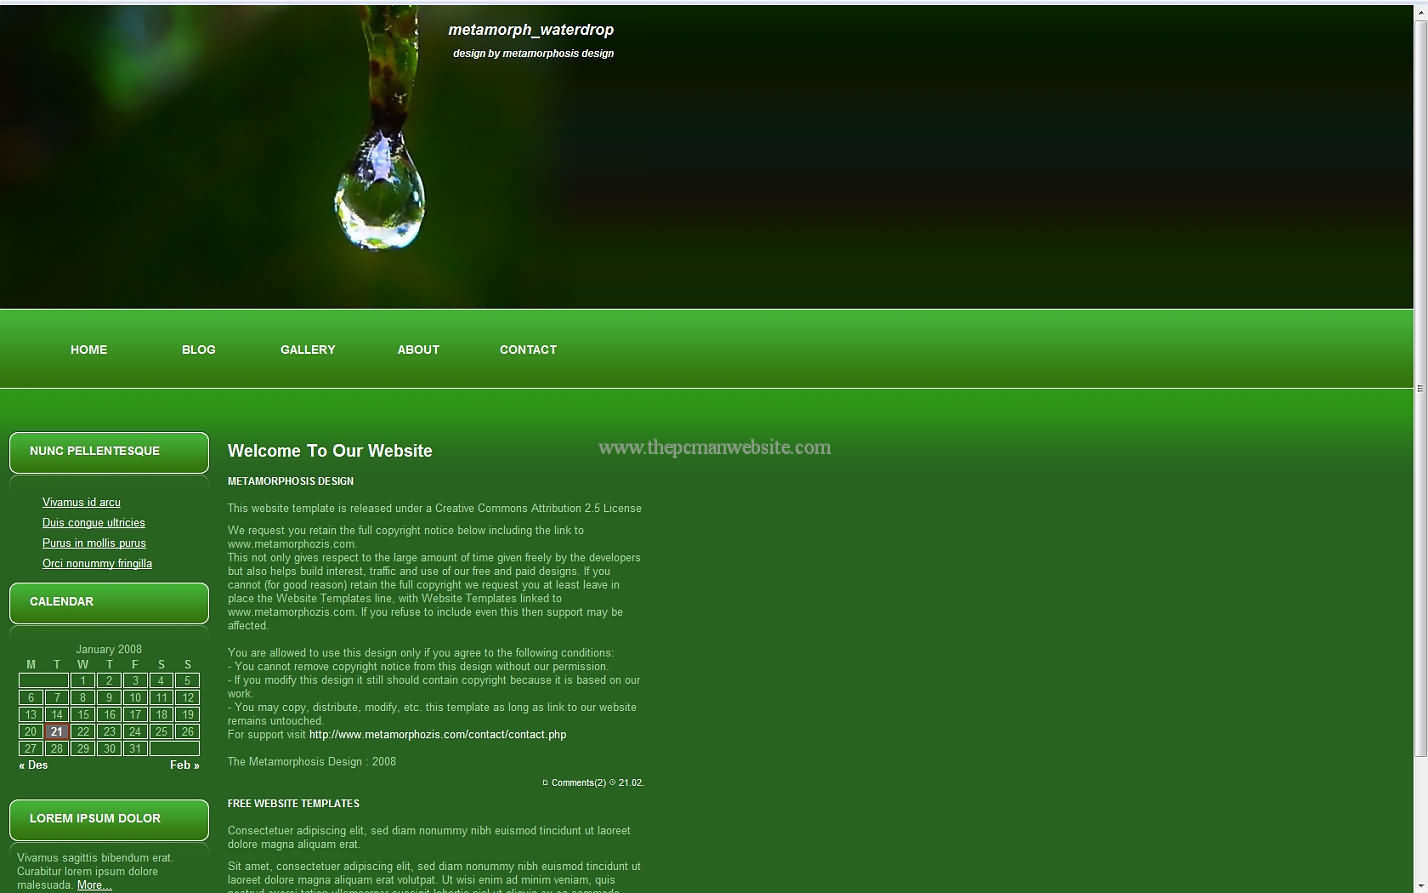 Metamorph Waterdrop wordpress template